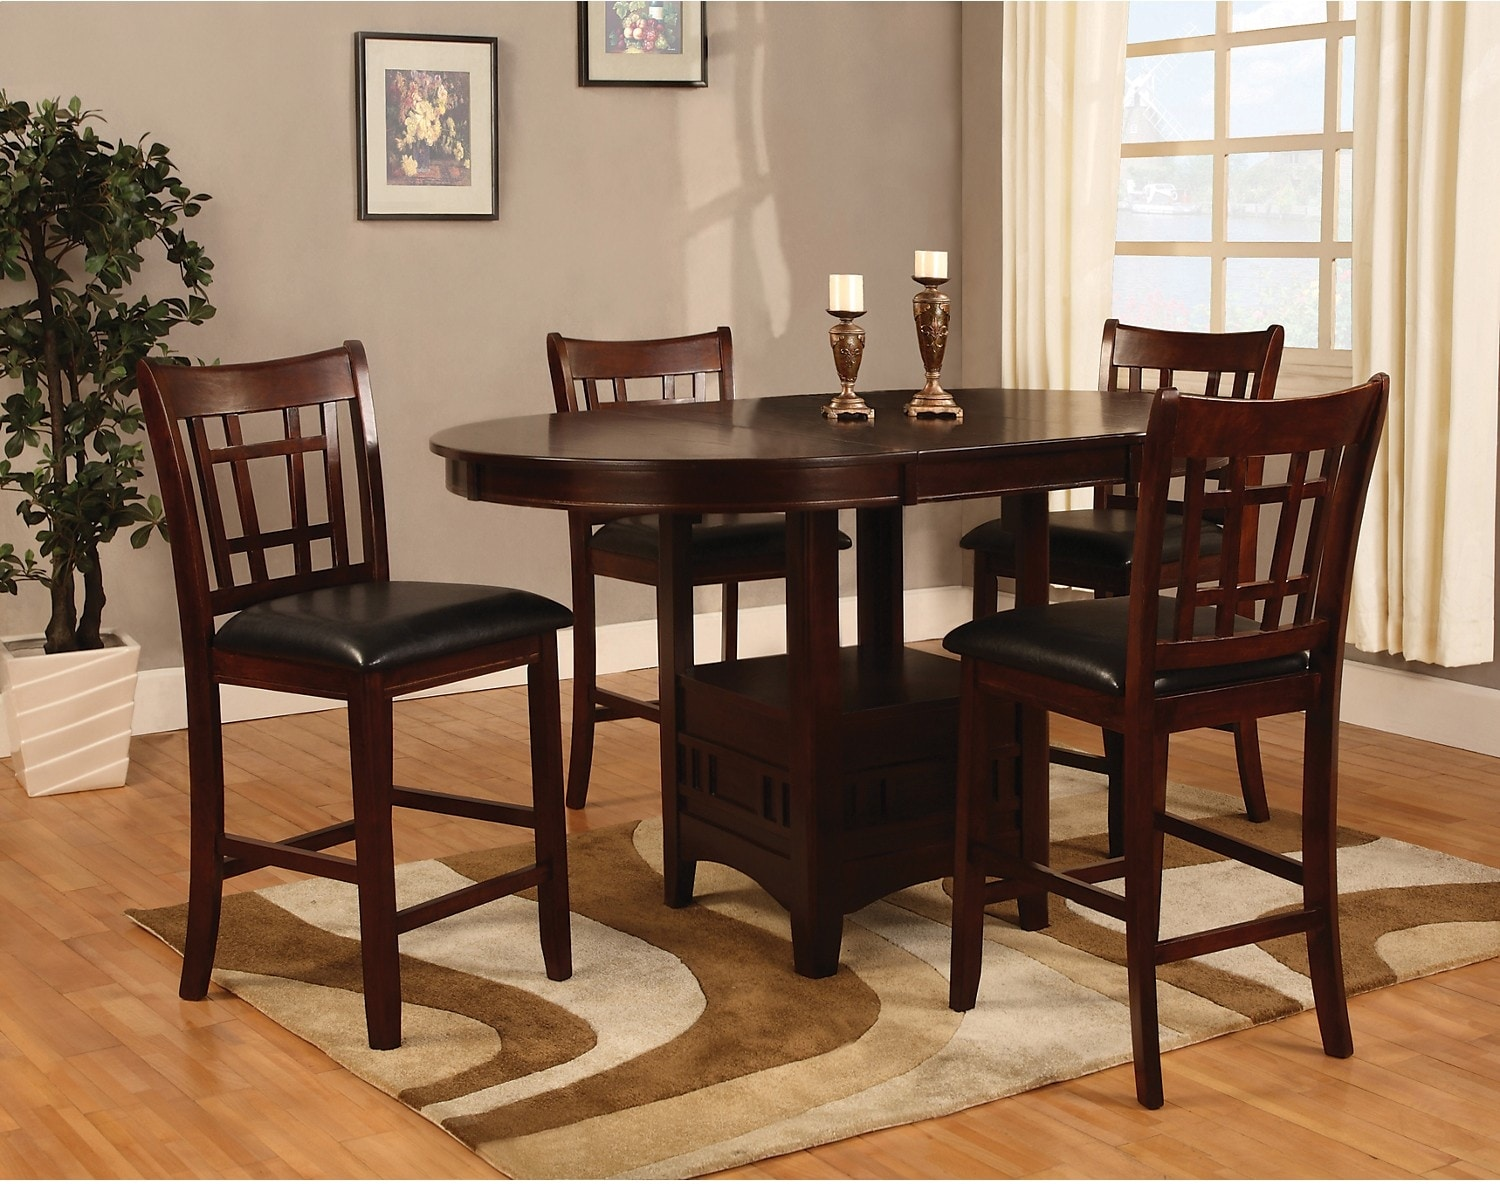 Dalton 7 Piece Counter Height Dining Package   Chocolate